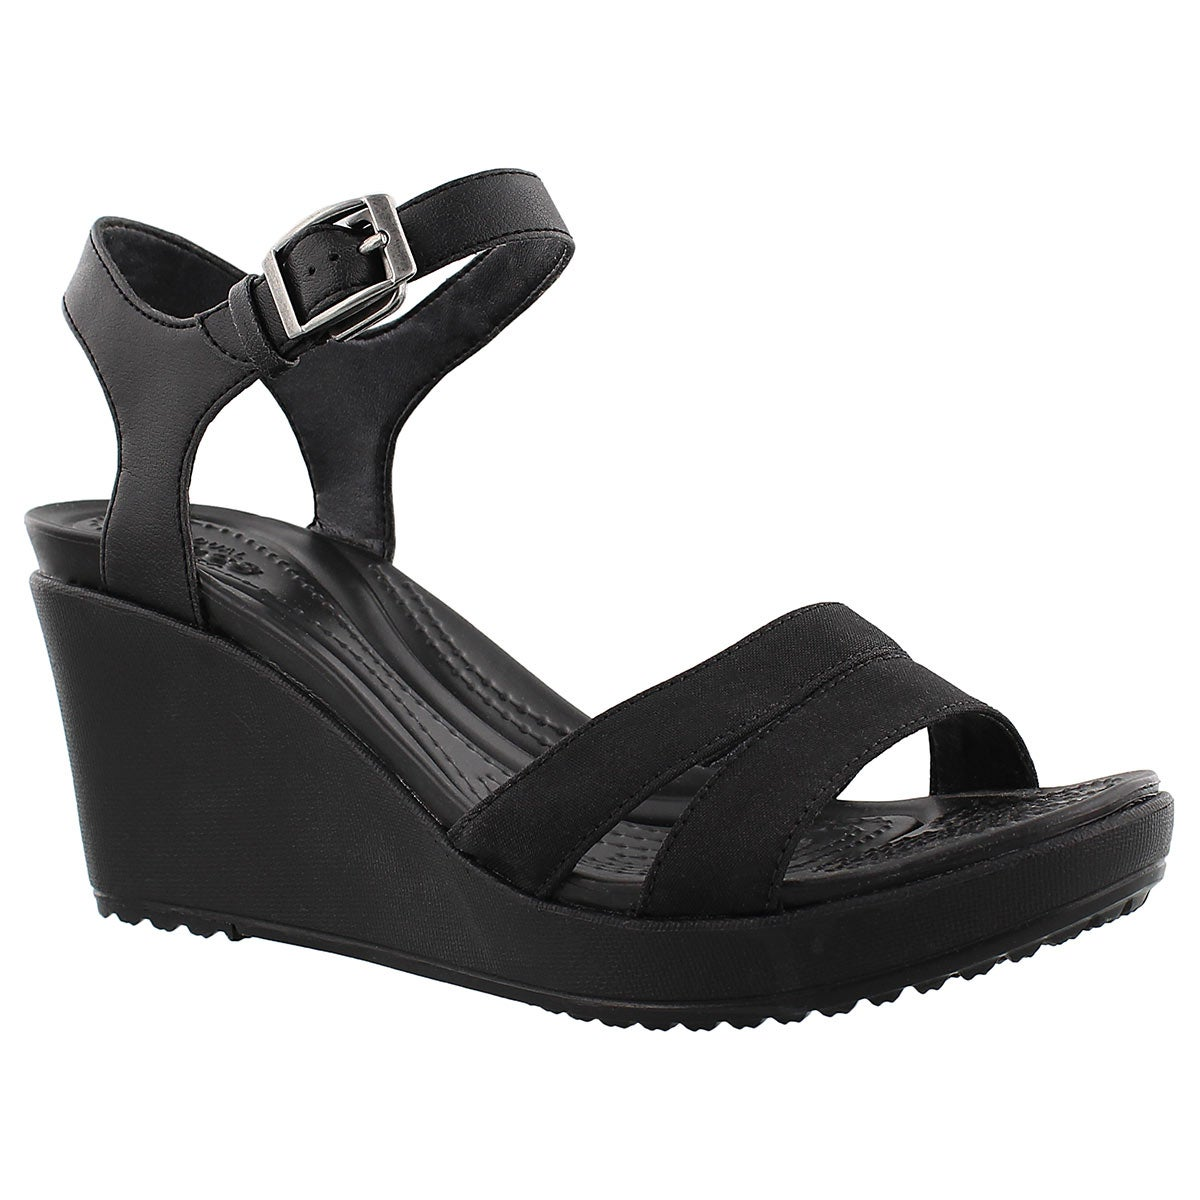 Women's LEIGH II black wedge sandals